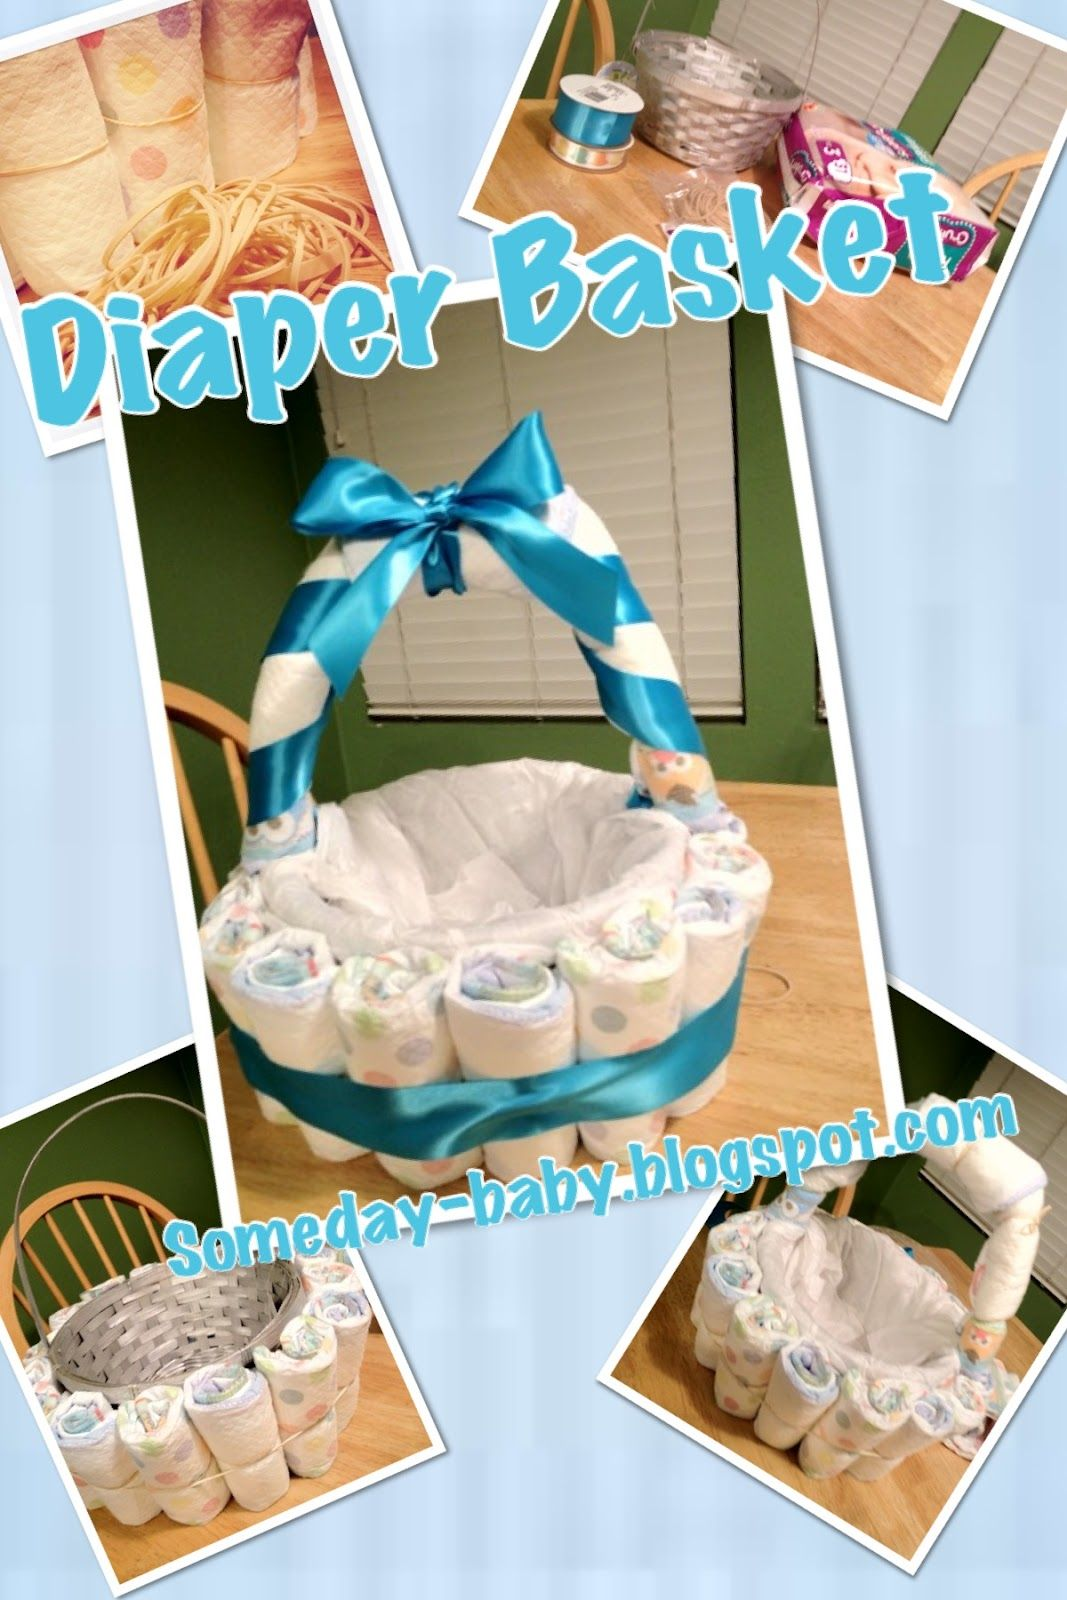 Learn How To Make A Diaper Cake Today With 50 Different